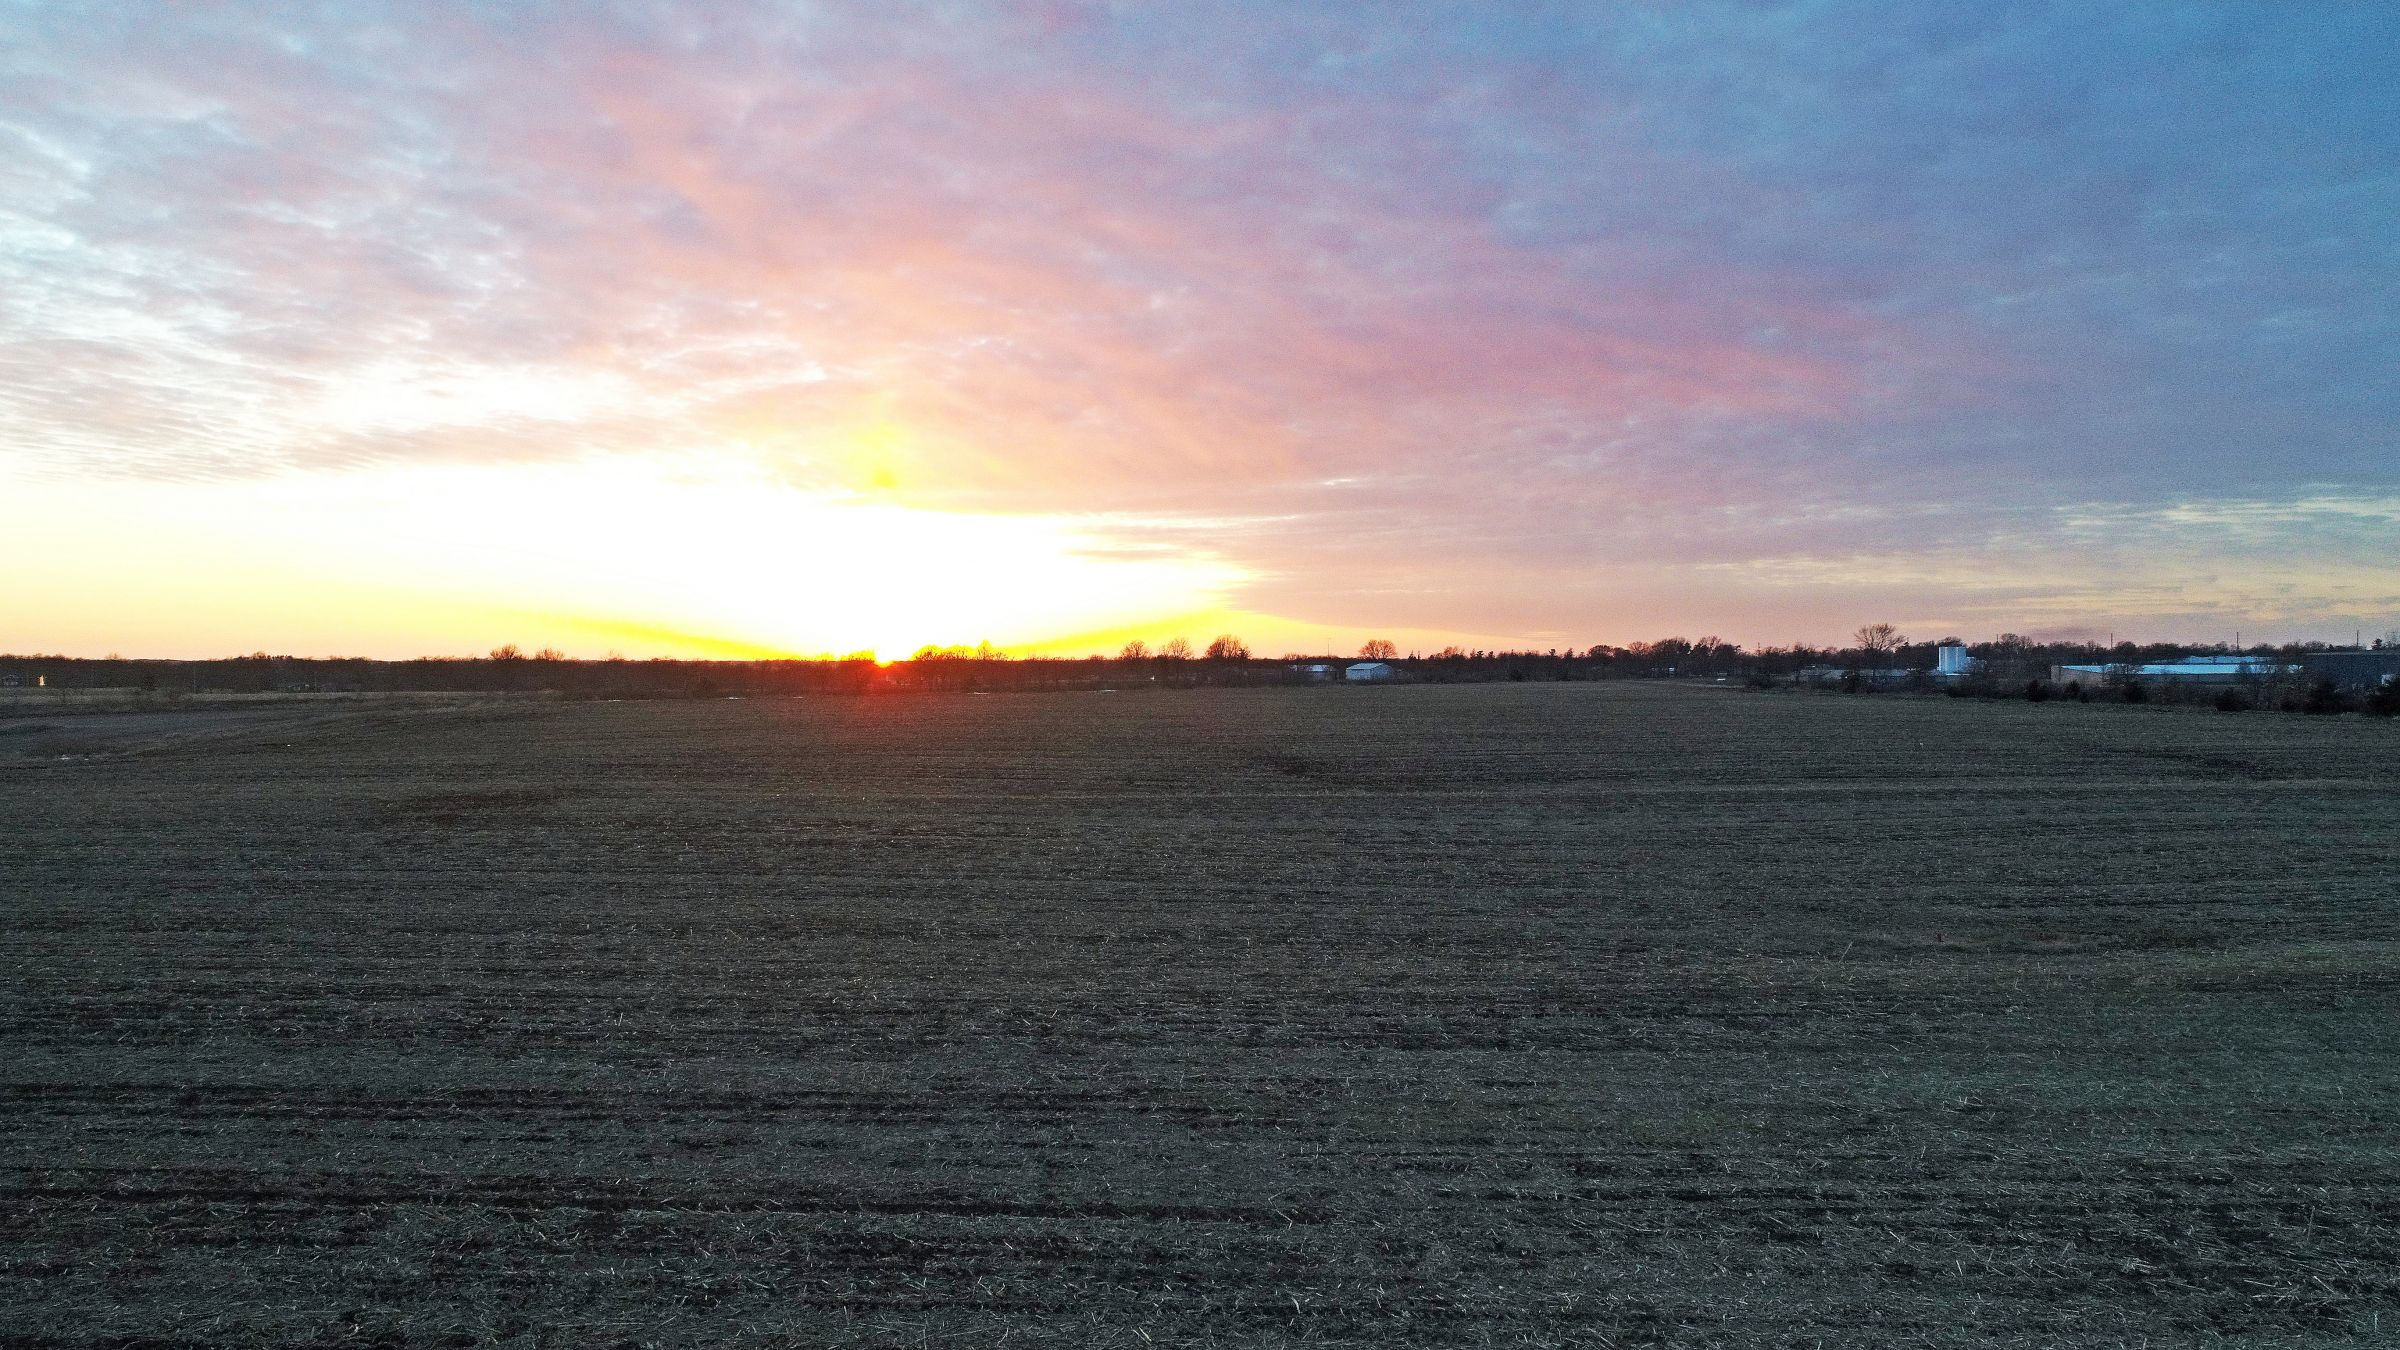 land-lucas-county-iowa-40-acres-listing-number-15394-0-2021-03-08-183143.jpg